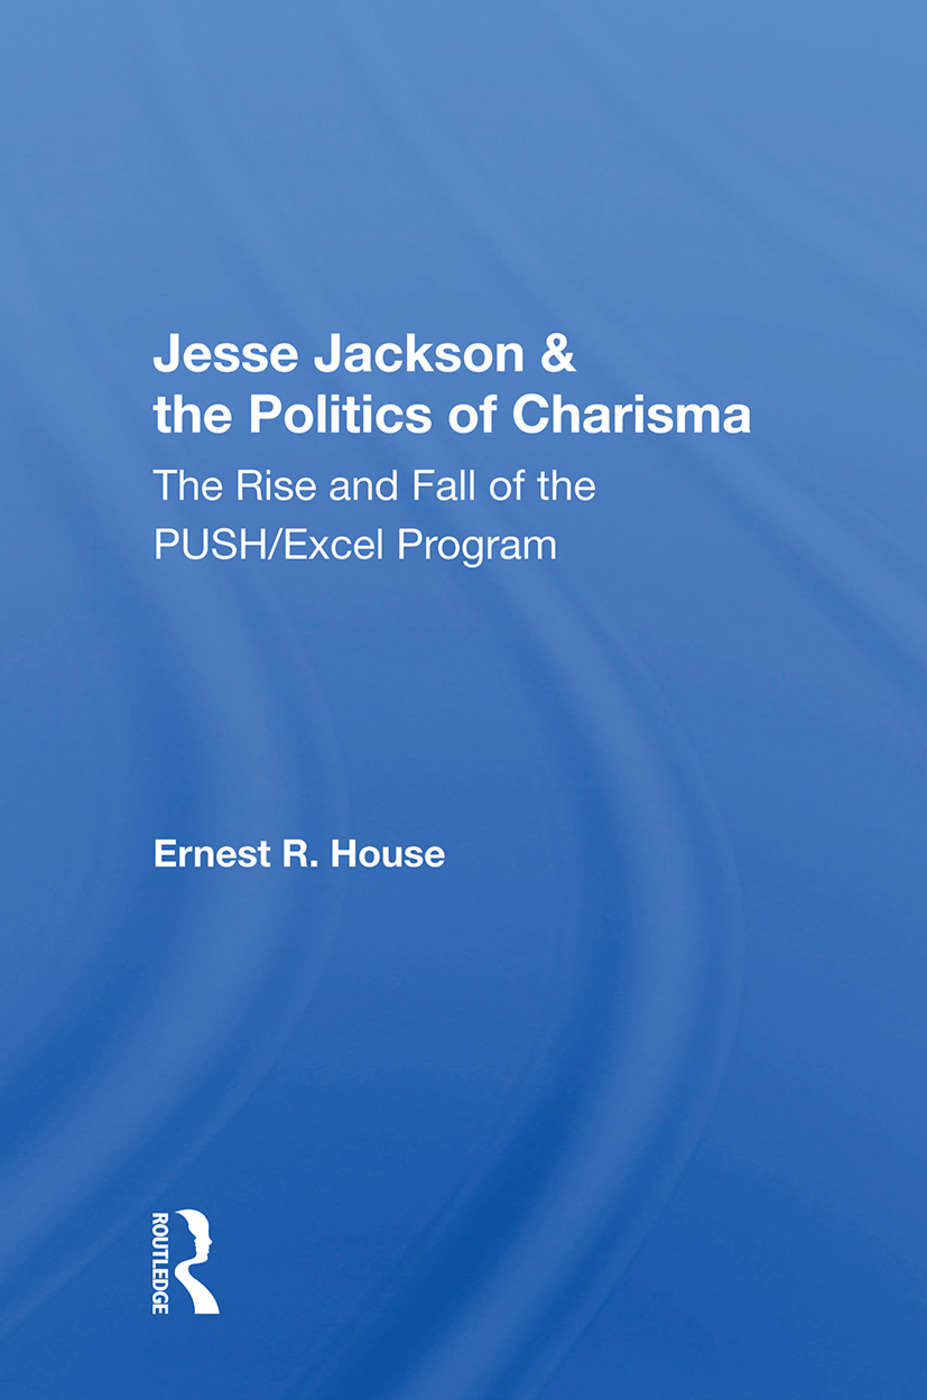 Jesse Jackson & the Politics of Charisma